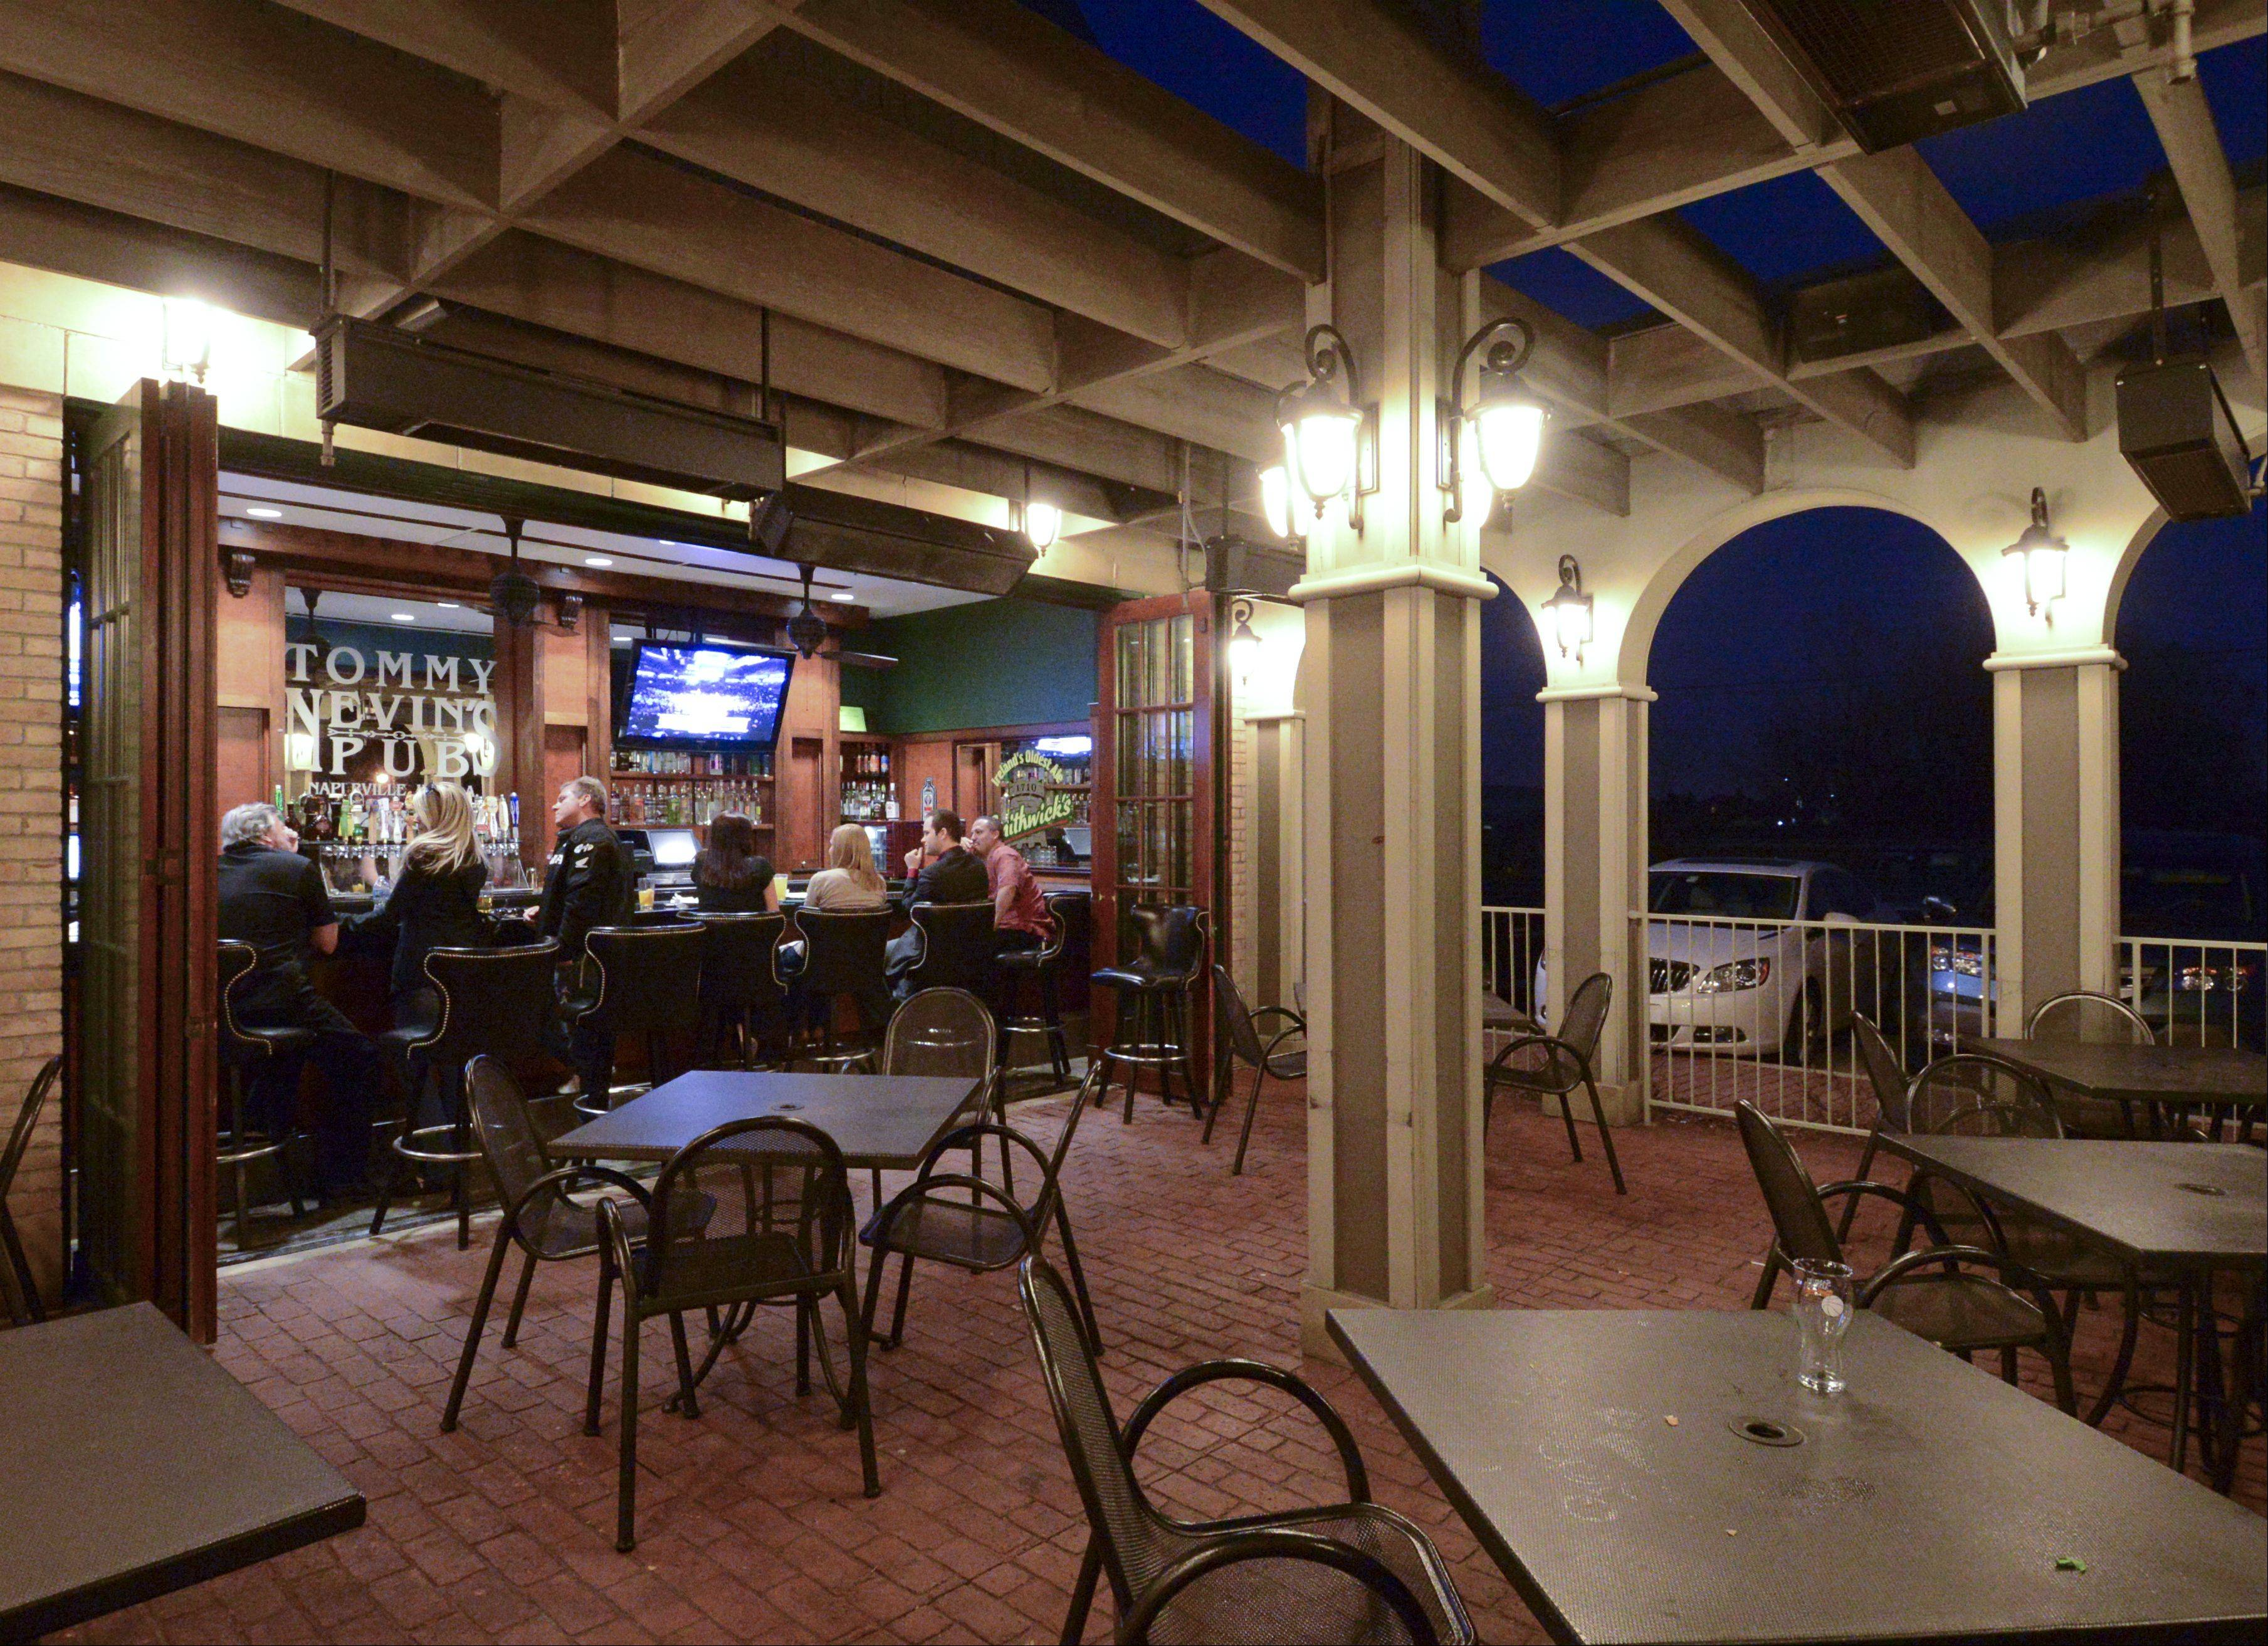 Once the weather warms up, the outside patio bar will be the place to be at Tommy Nevin's.